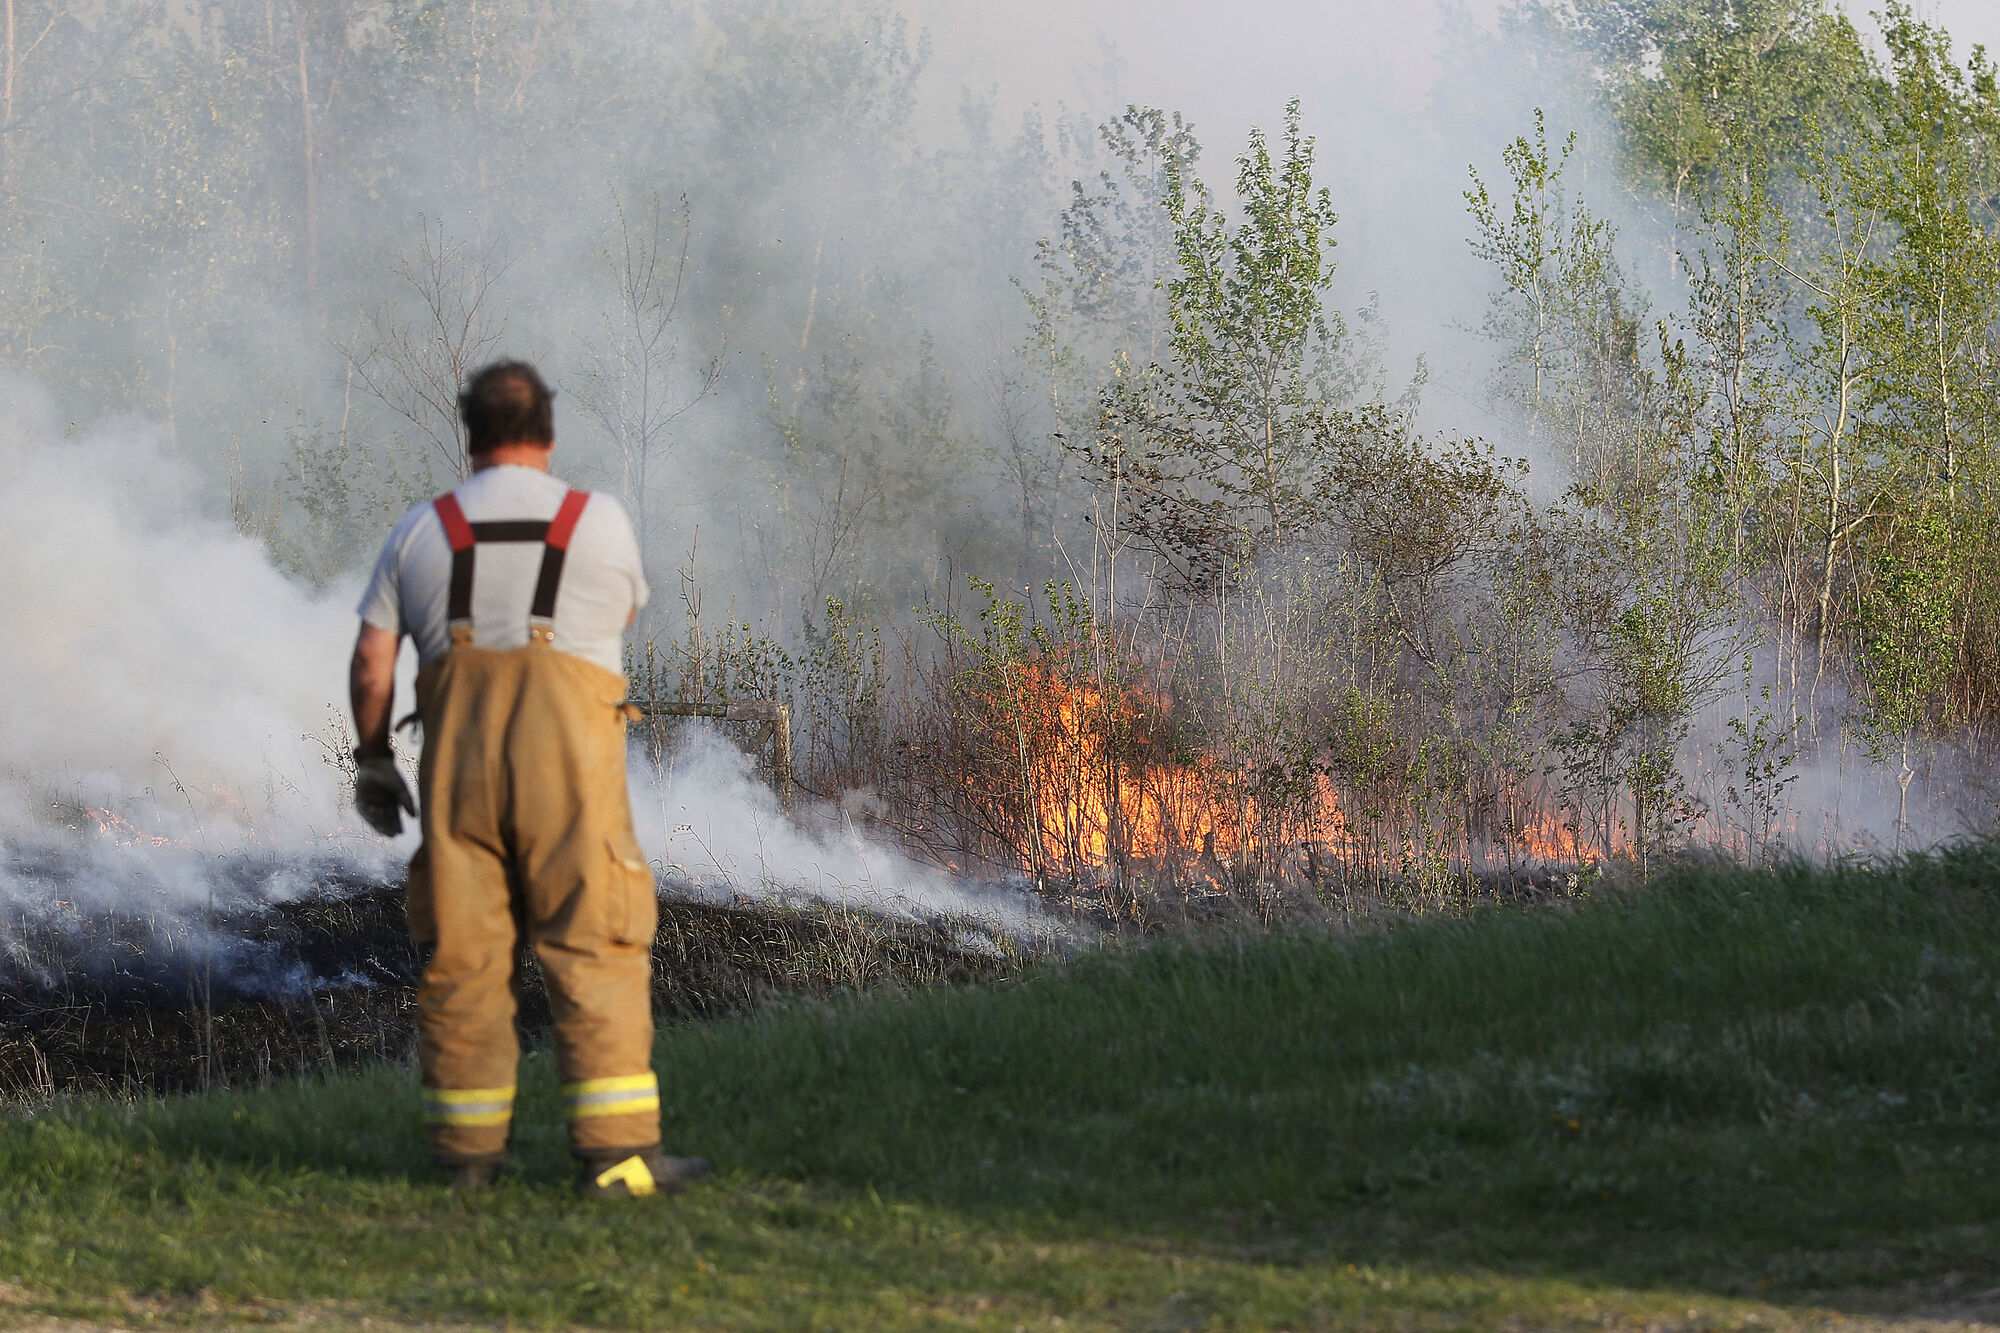 Firefighters from three rural municipalities have been working for two days on wildfires fanned by strong wind in the RM of Piney.